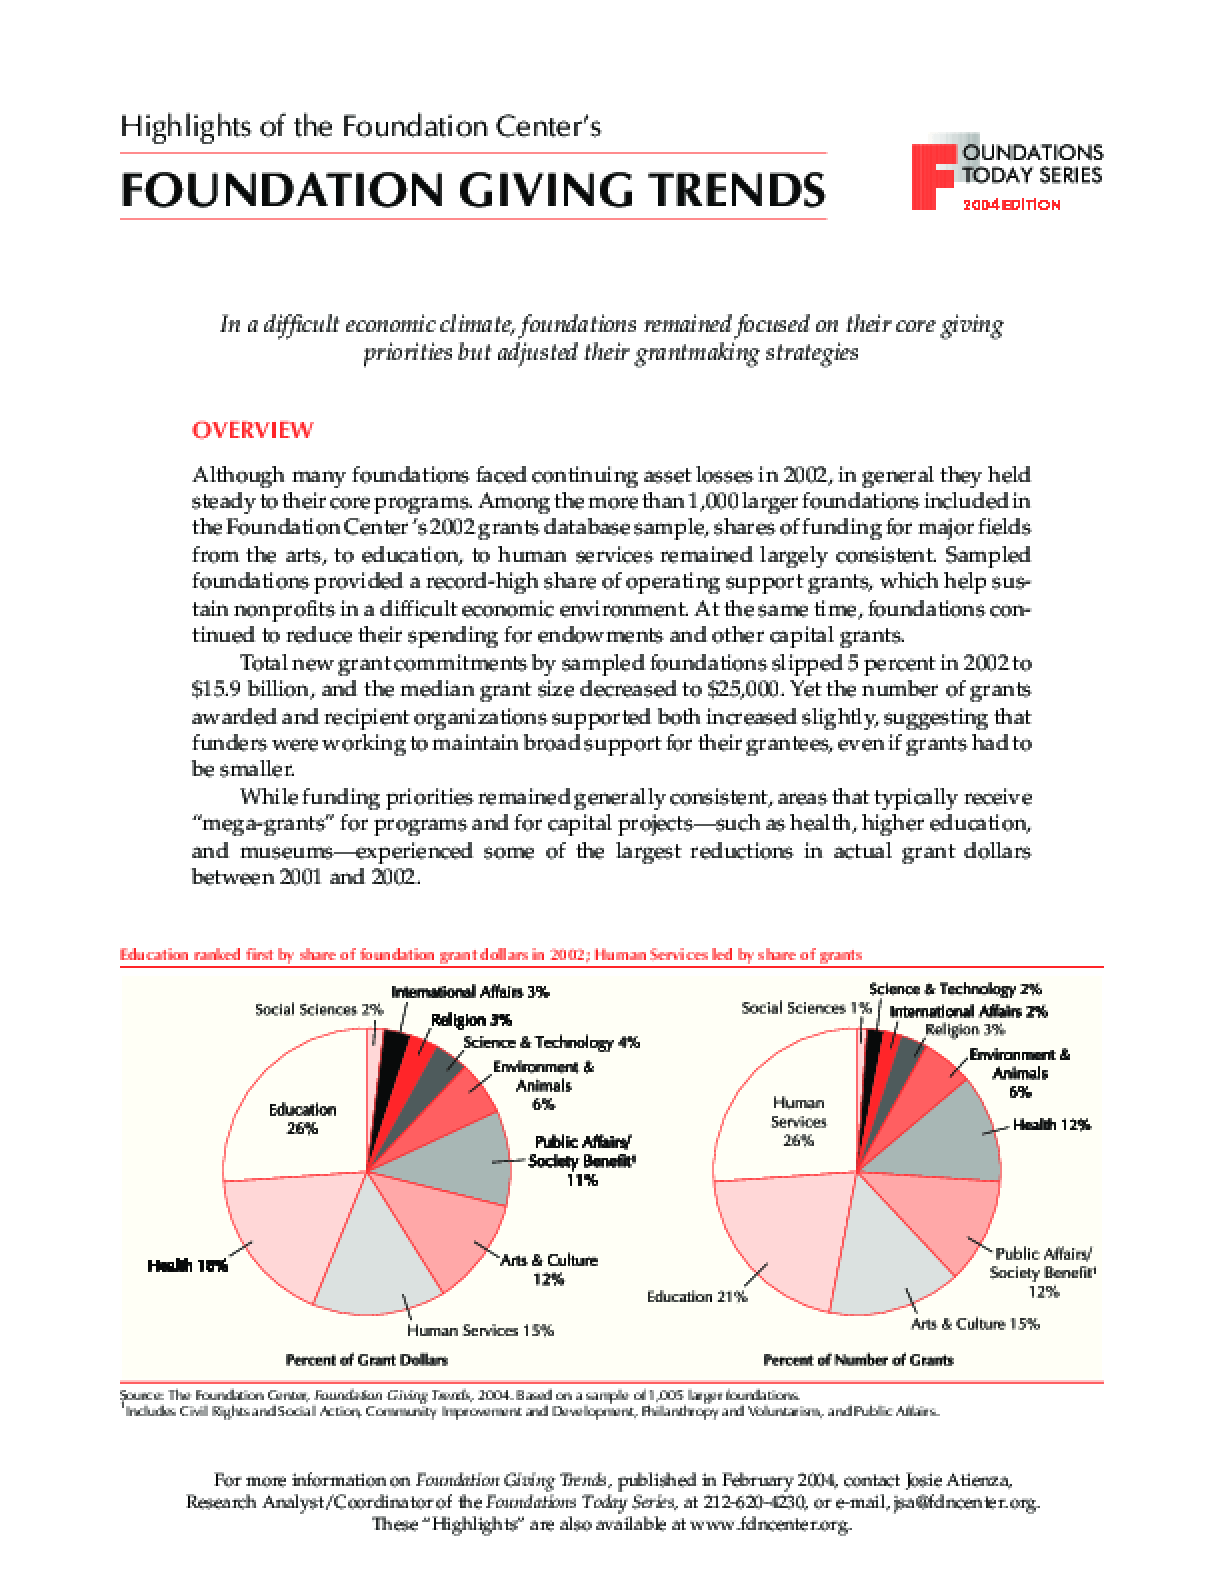 Highlights of the Foundation Center's Foundation Giving Trends - Foundations Today Series, 2004